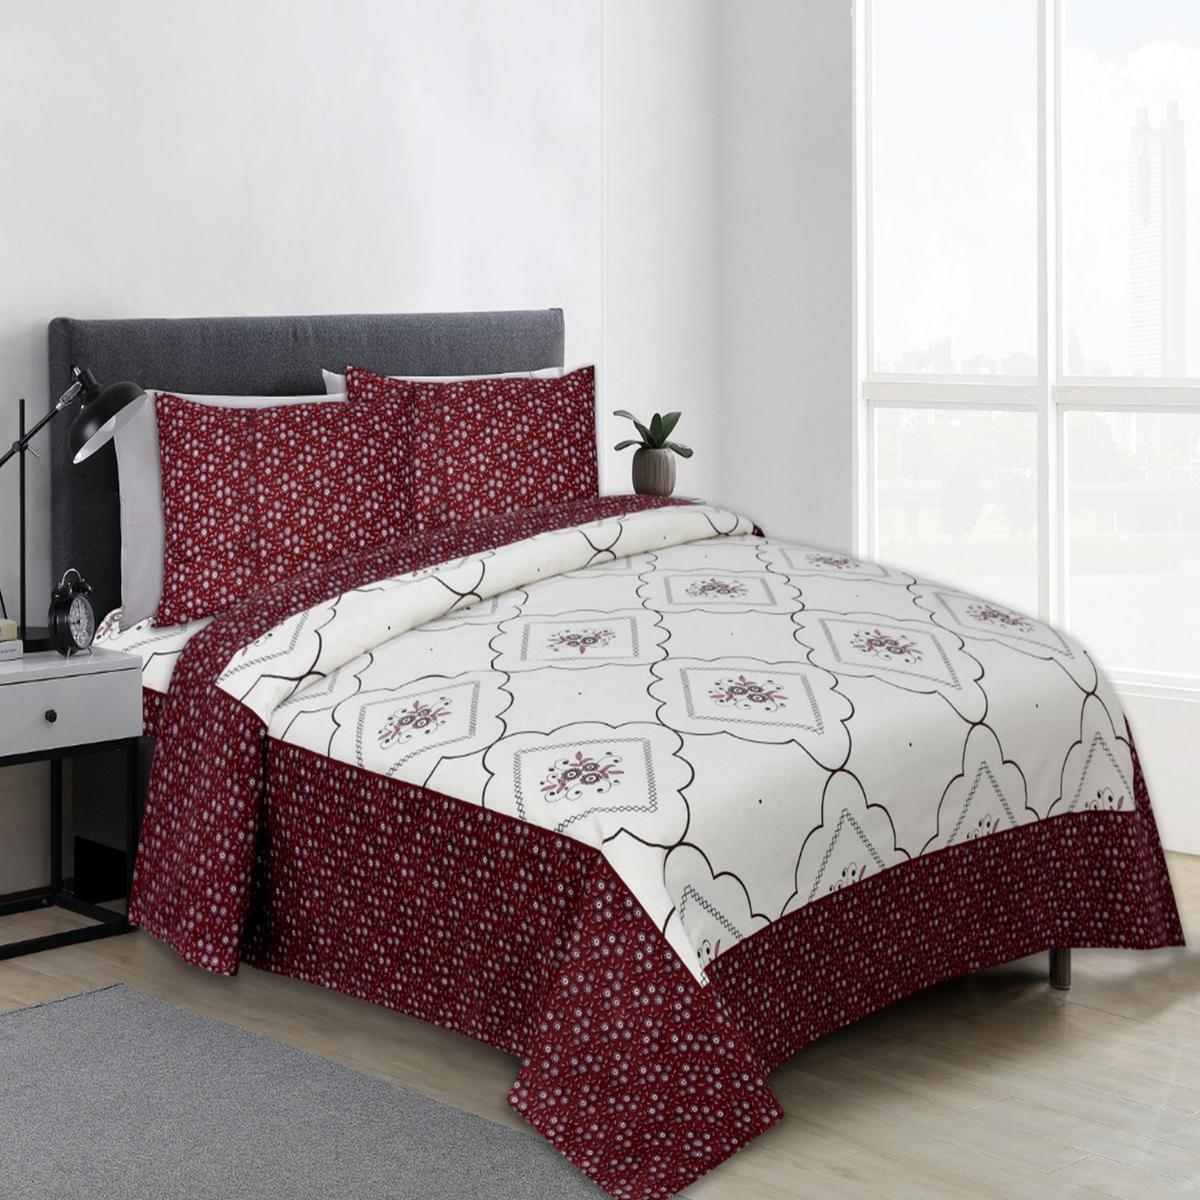 Diva Collection - Brown Colored Jaipuri Print Cotton King Bedsheet with 2 Pillow Cover